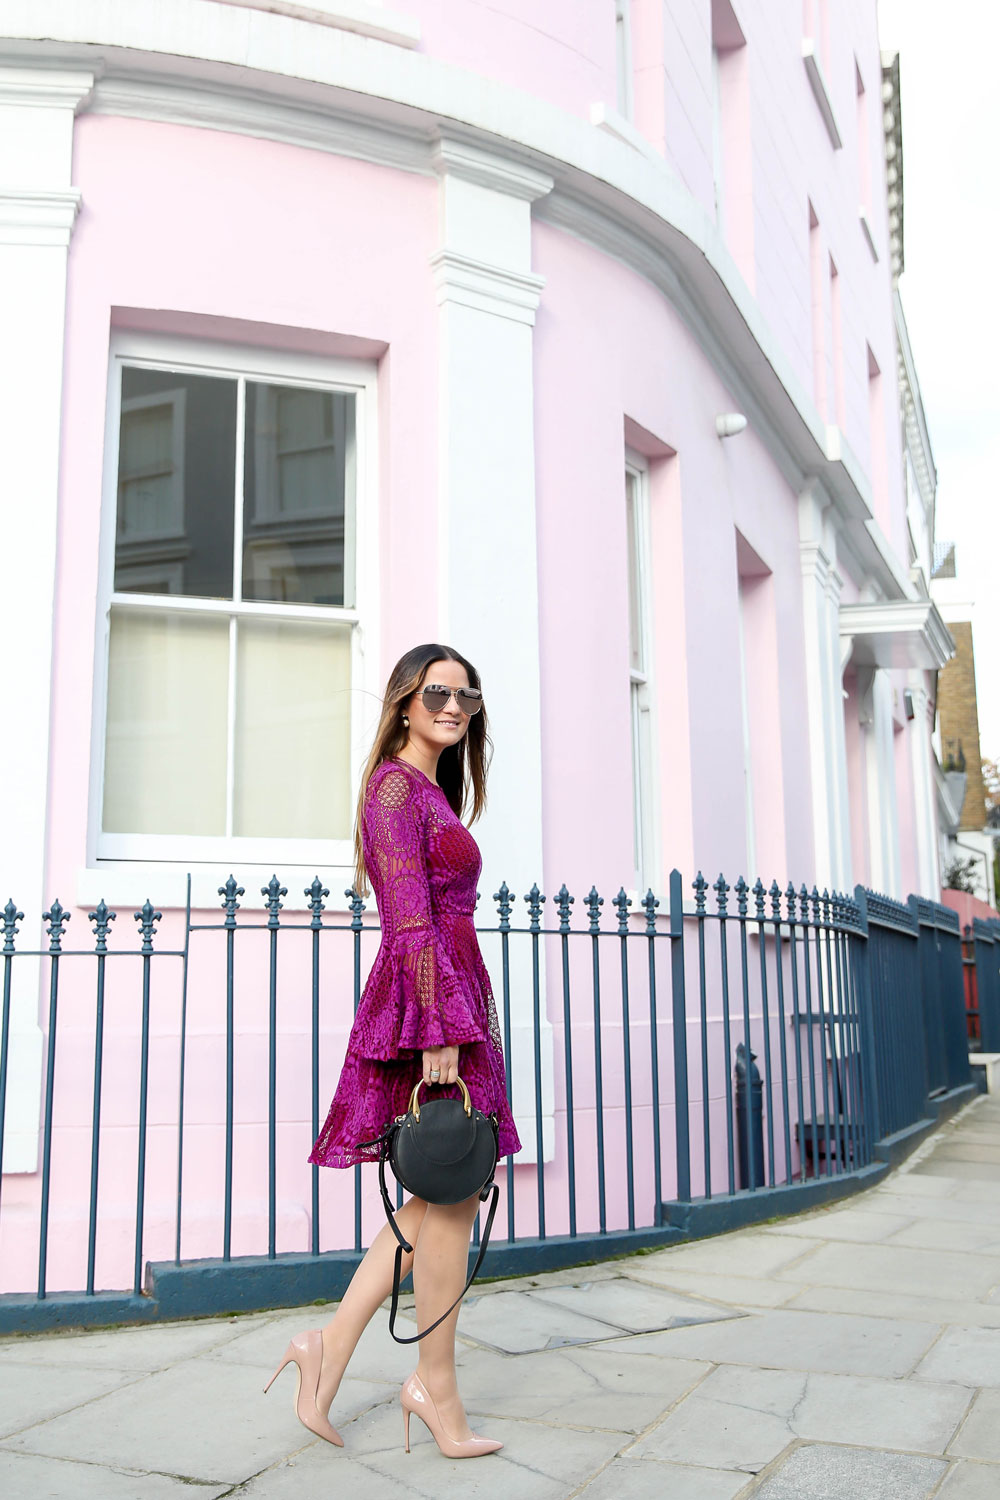 London Notting Hill Pink Home